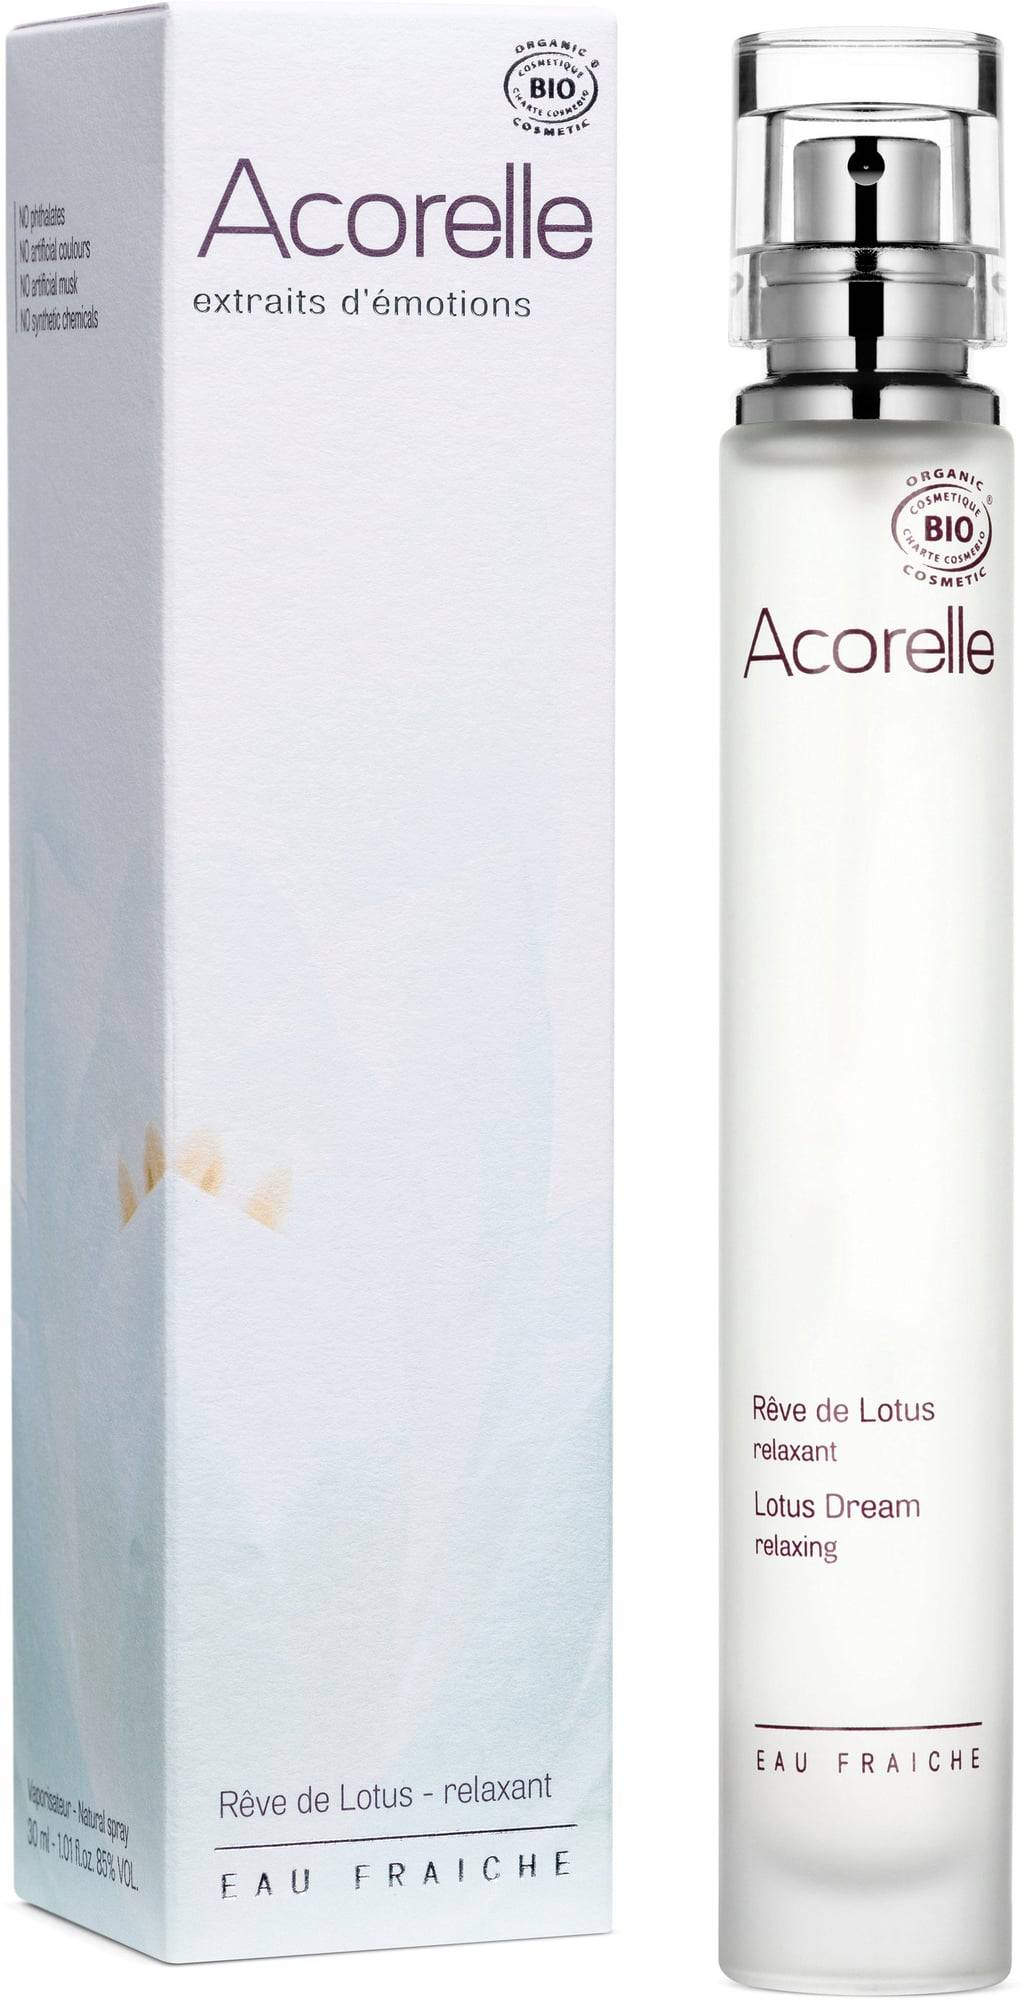 Acorelle Bio Eau Fraiche Lotus Dream -tuoksu - 30 ml